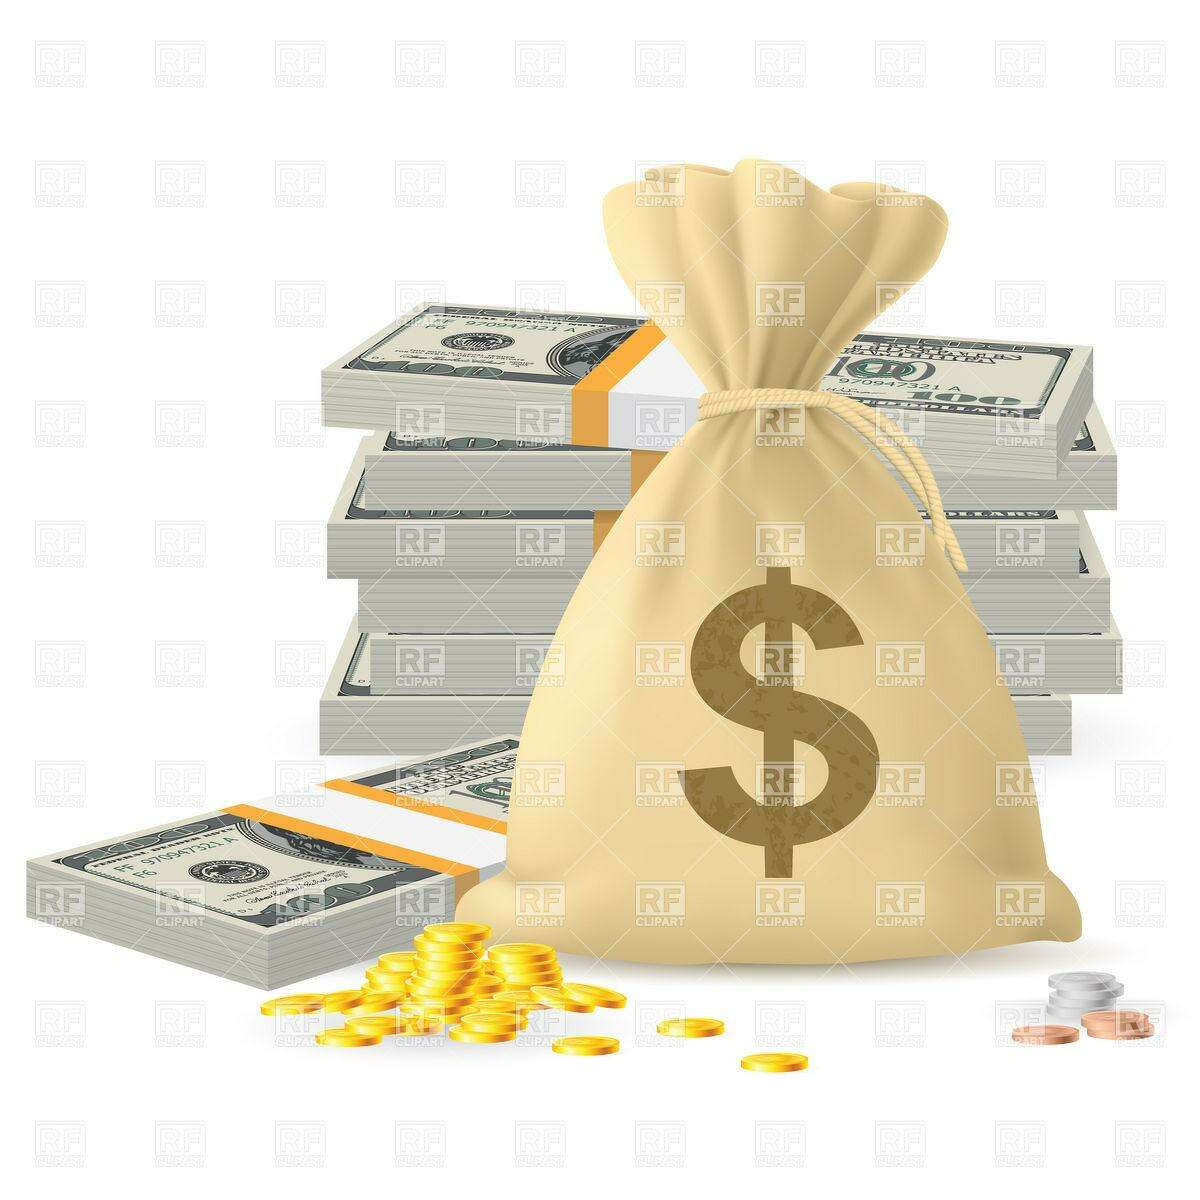 Piles of money in the form of Cash and Gold coins, with Money sack